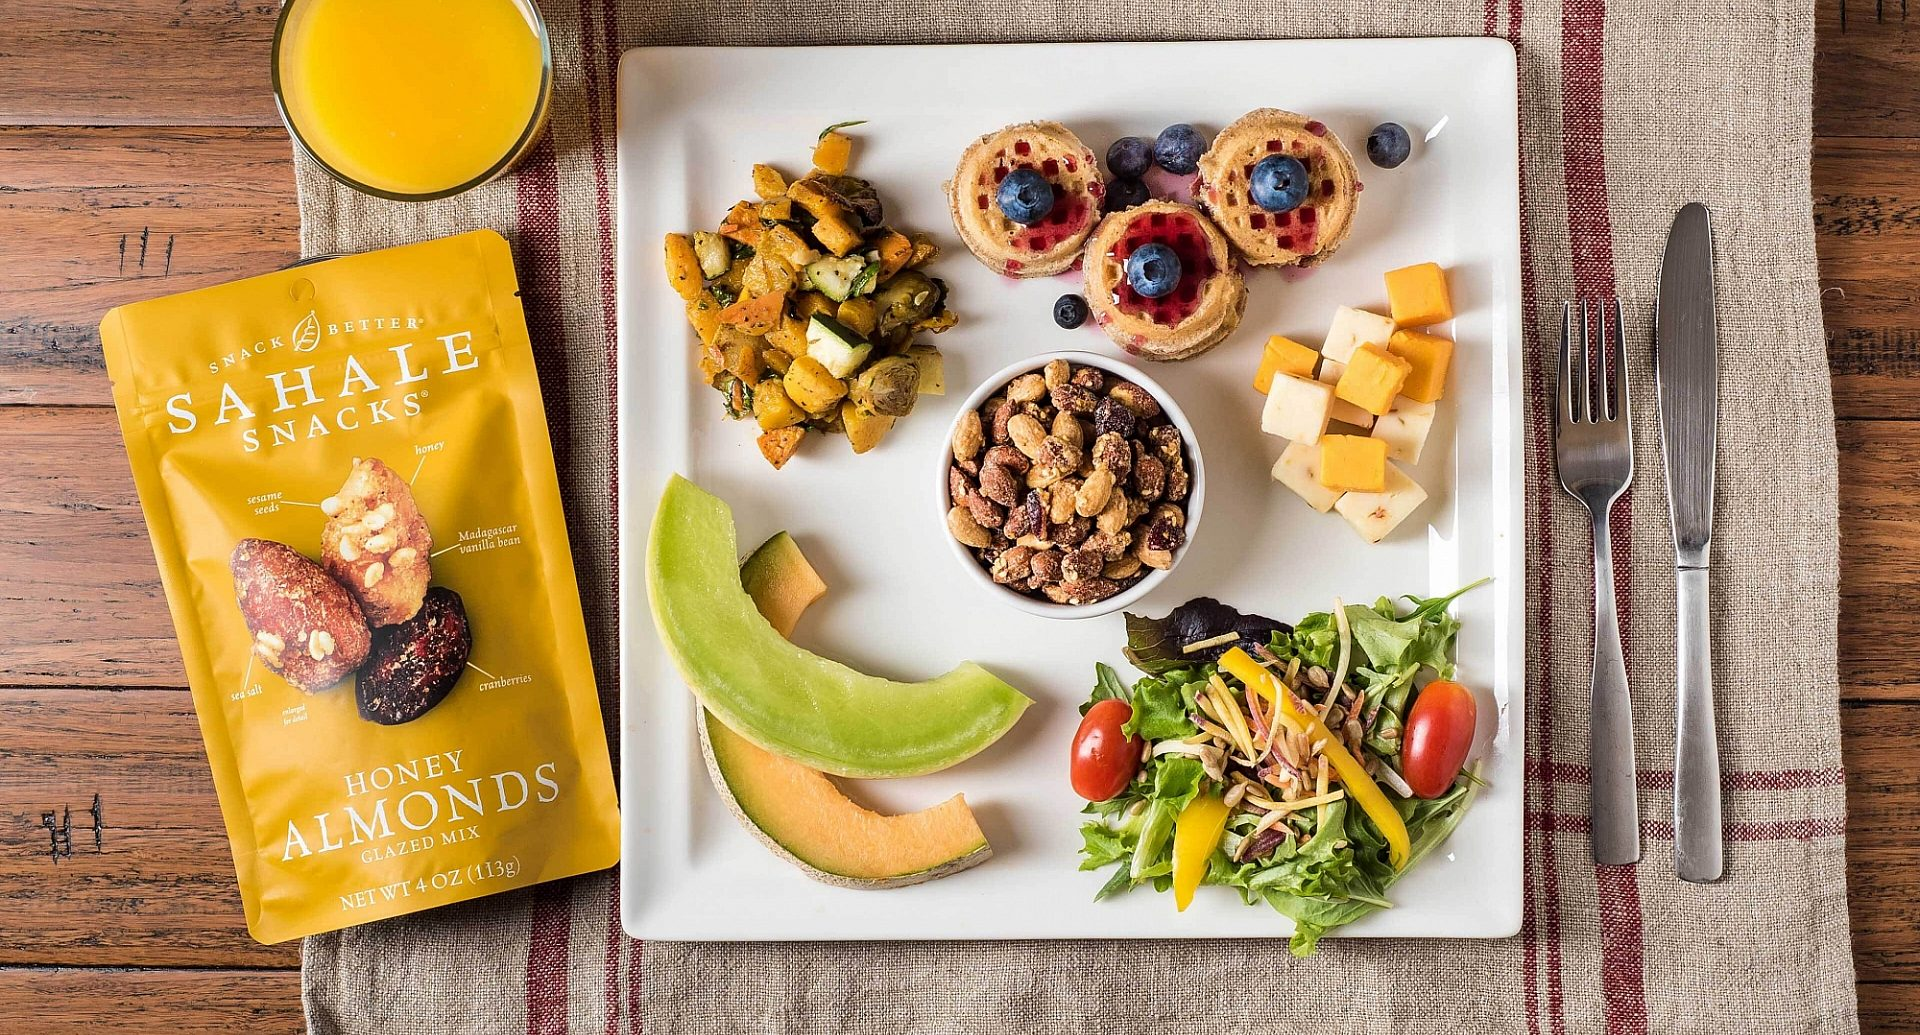 A table featuring may healthy snacks, like a back of Sahale Snacks Honey Almonds Glazed Mix